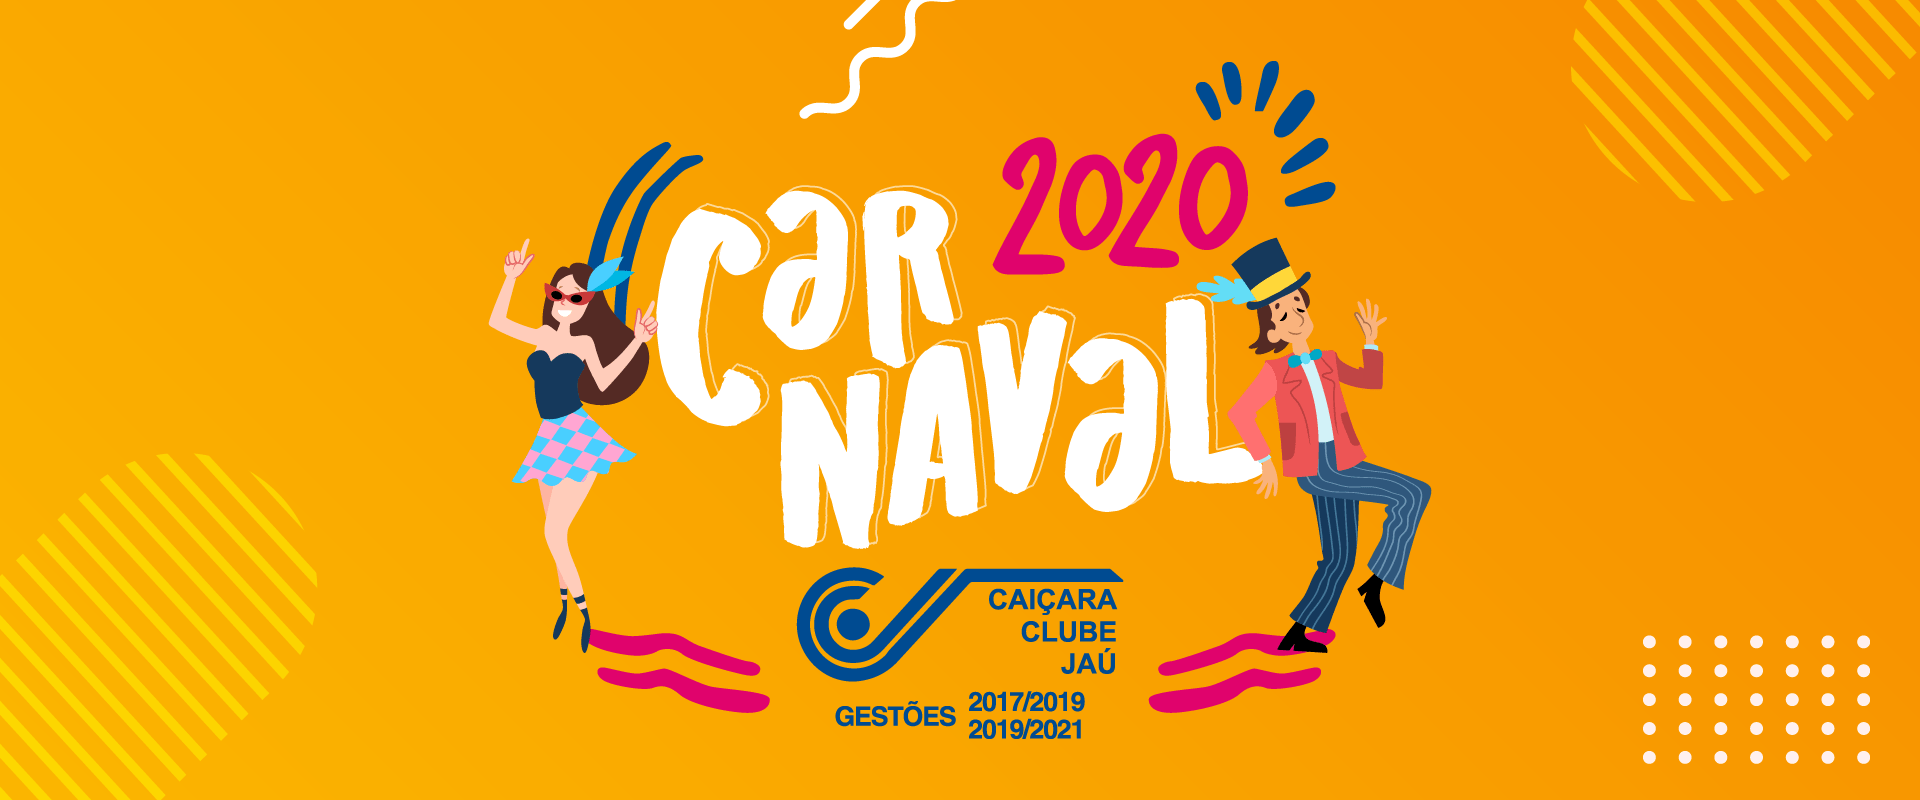 site_Carnaval 2020_Site_banner